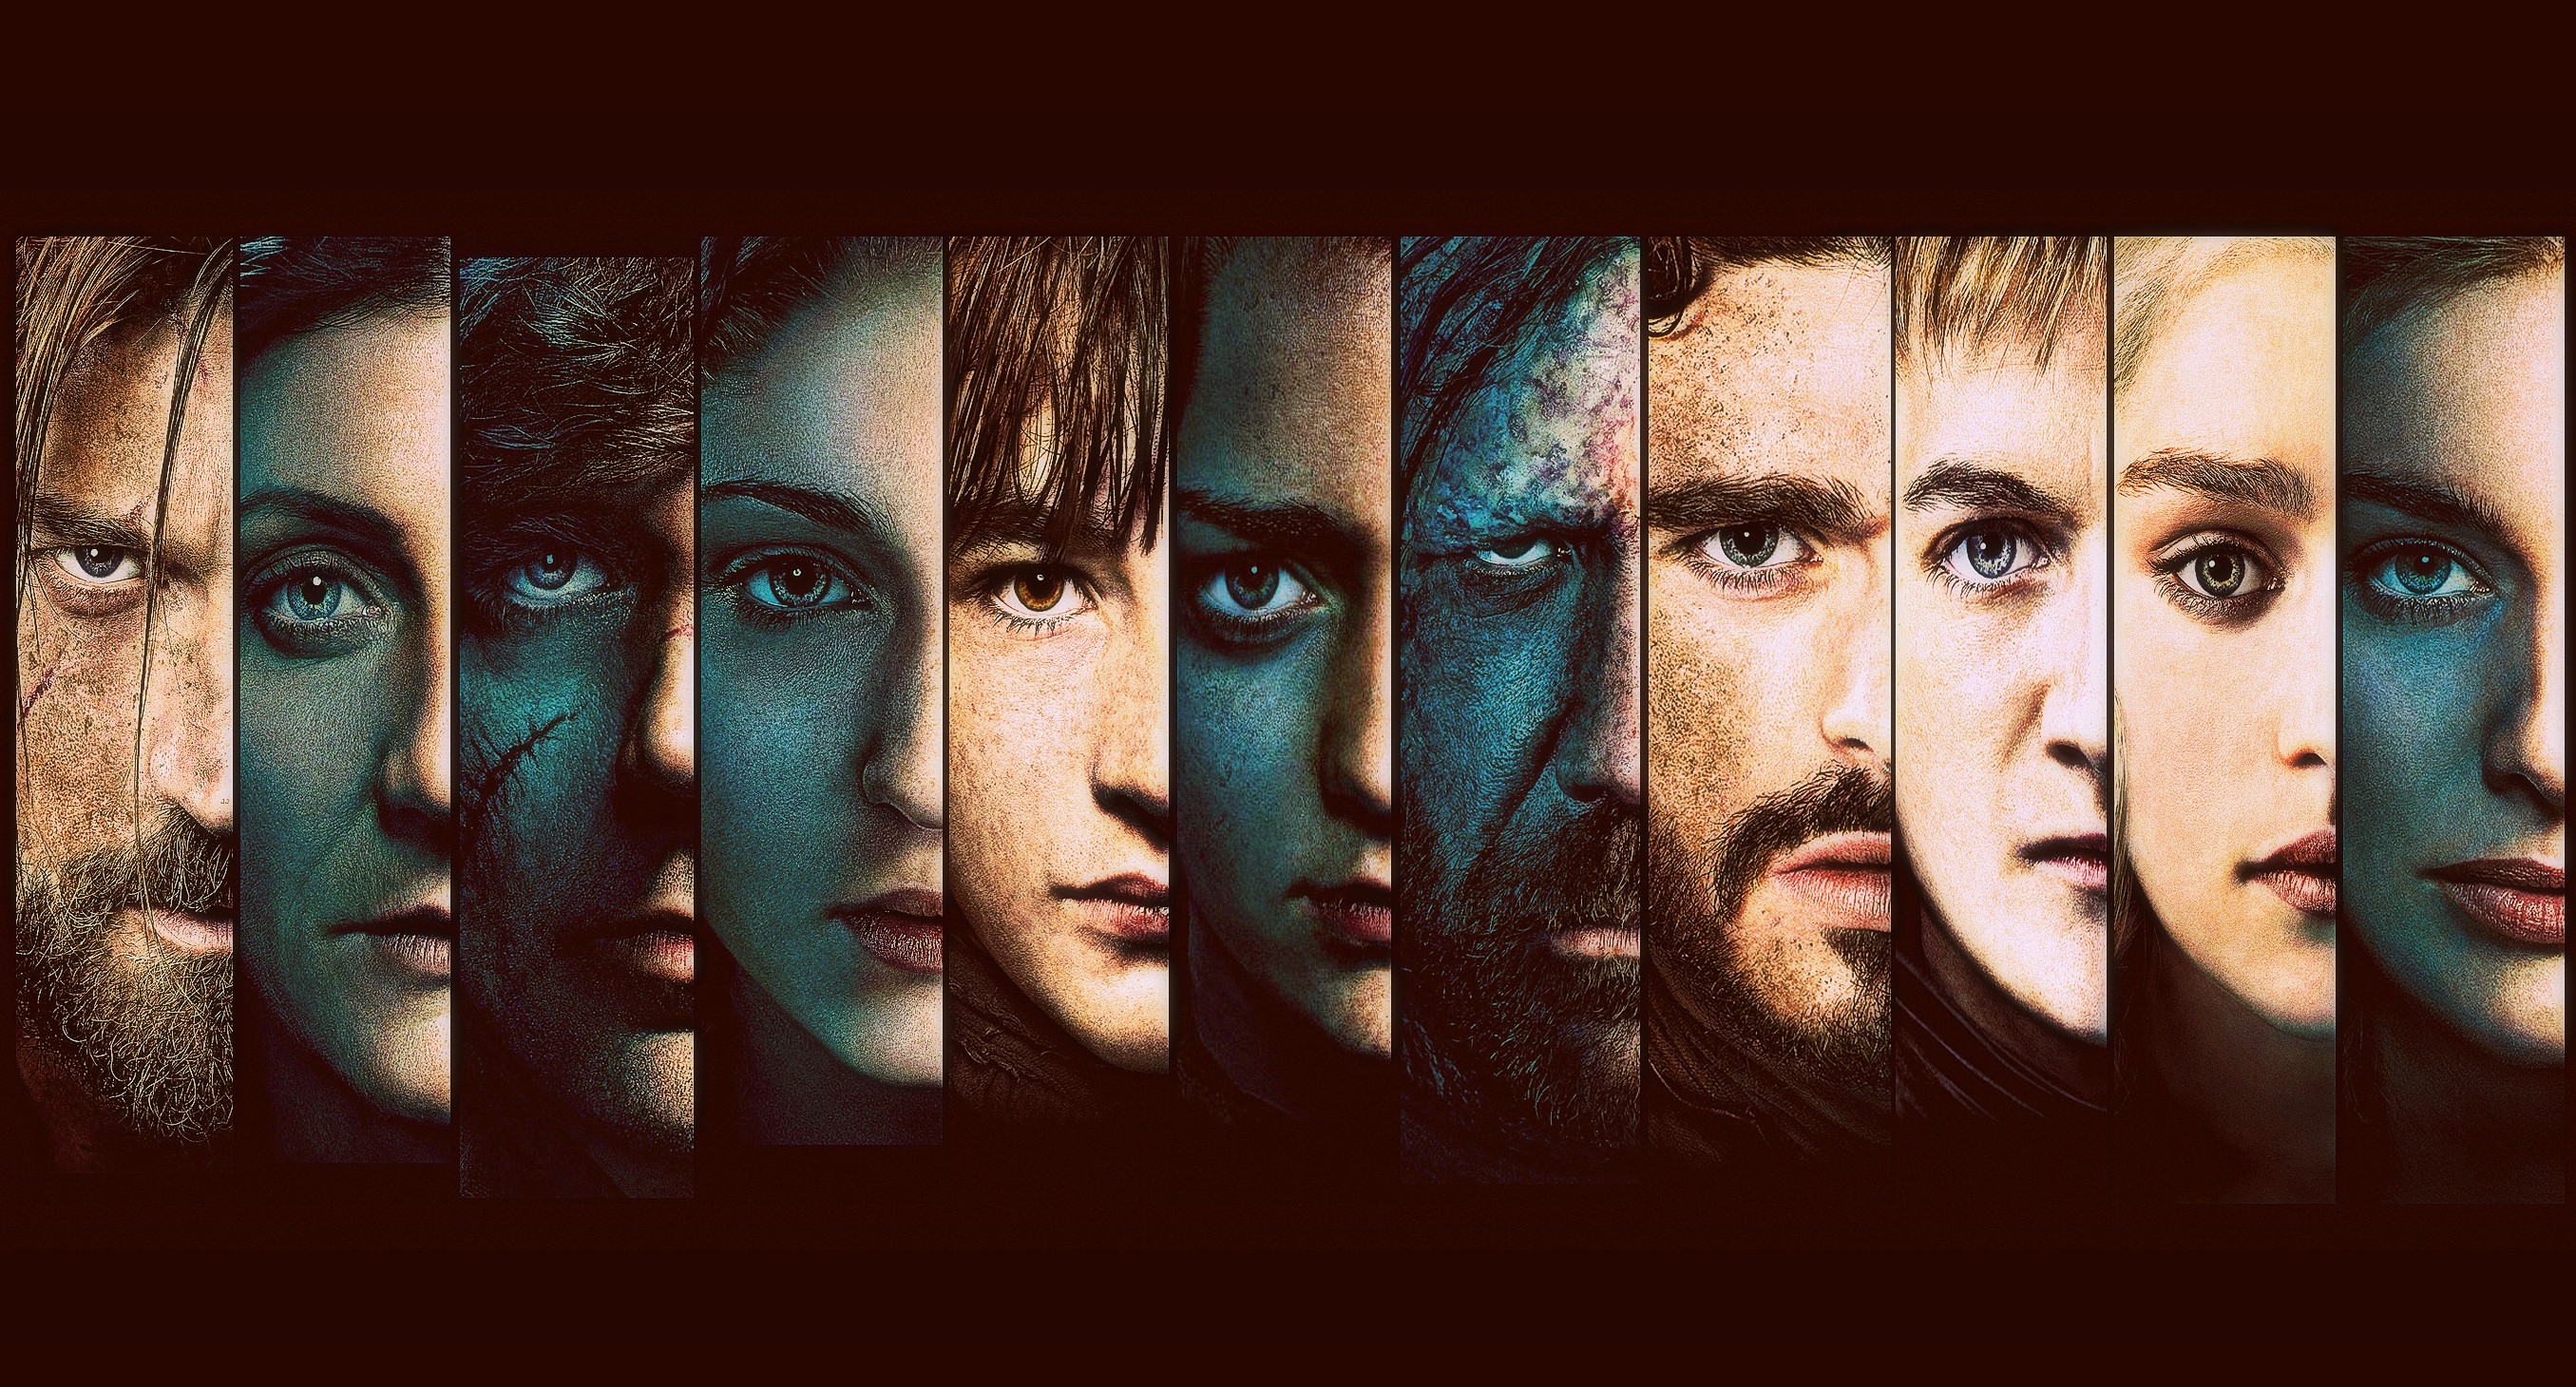 Game of Thrones wallpaper ·① Download free awesome HD ...